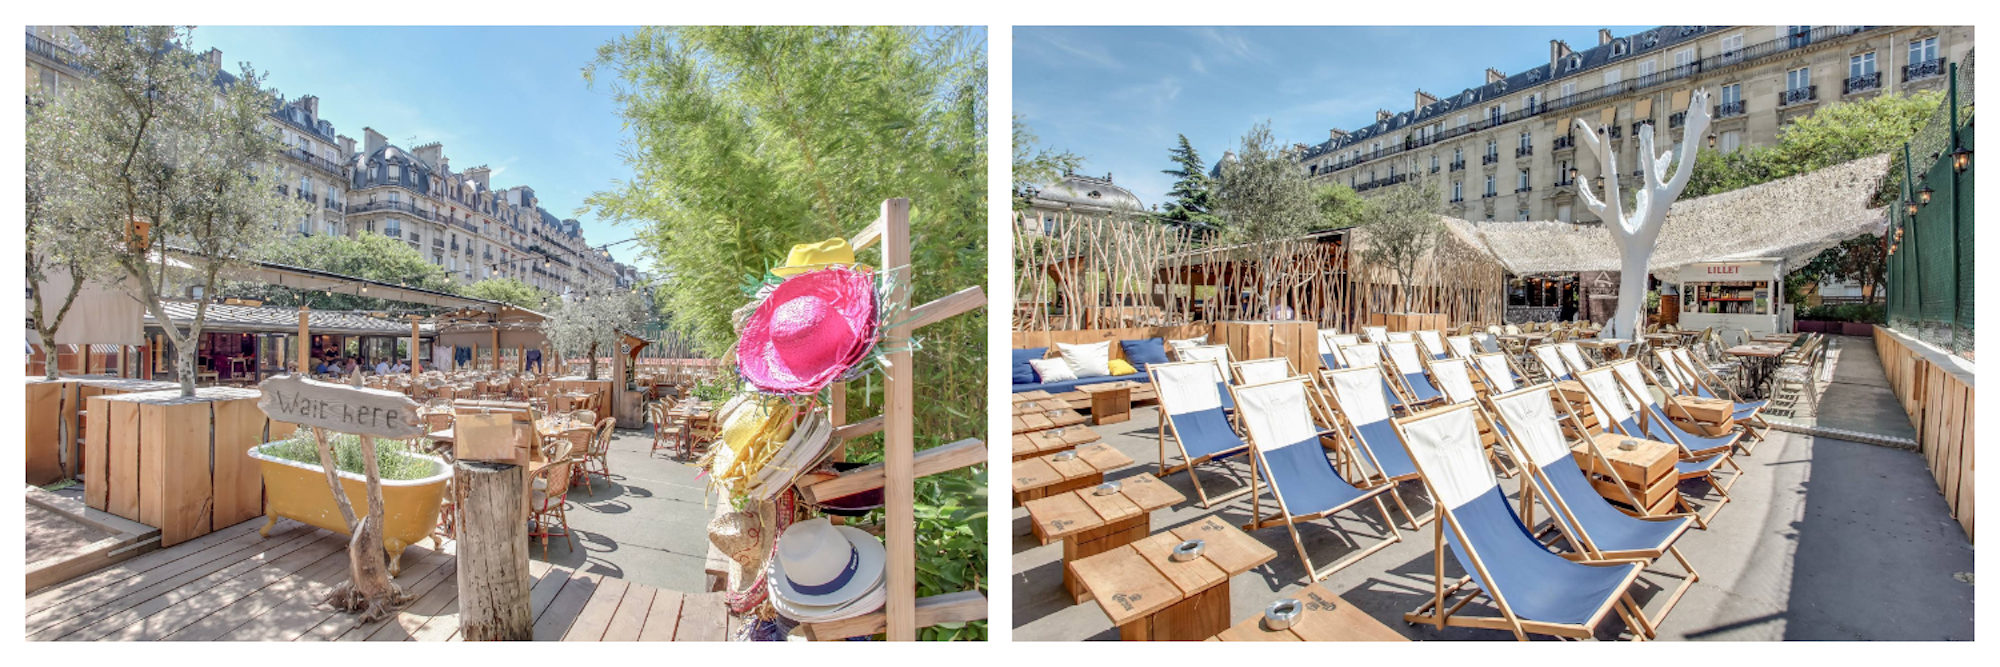 One of the best places to tan in Paris is Il Cottage with its timber tables and rattan chairs in the 16th district (left). Il Cottage also has plenty of deck chairs for topping up your tan in Paris this summer.